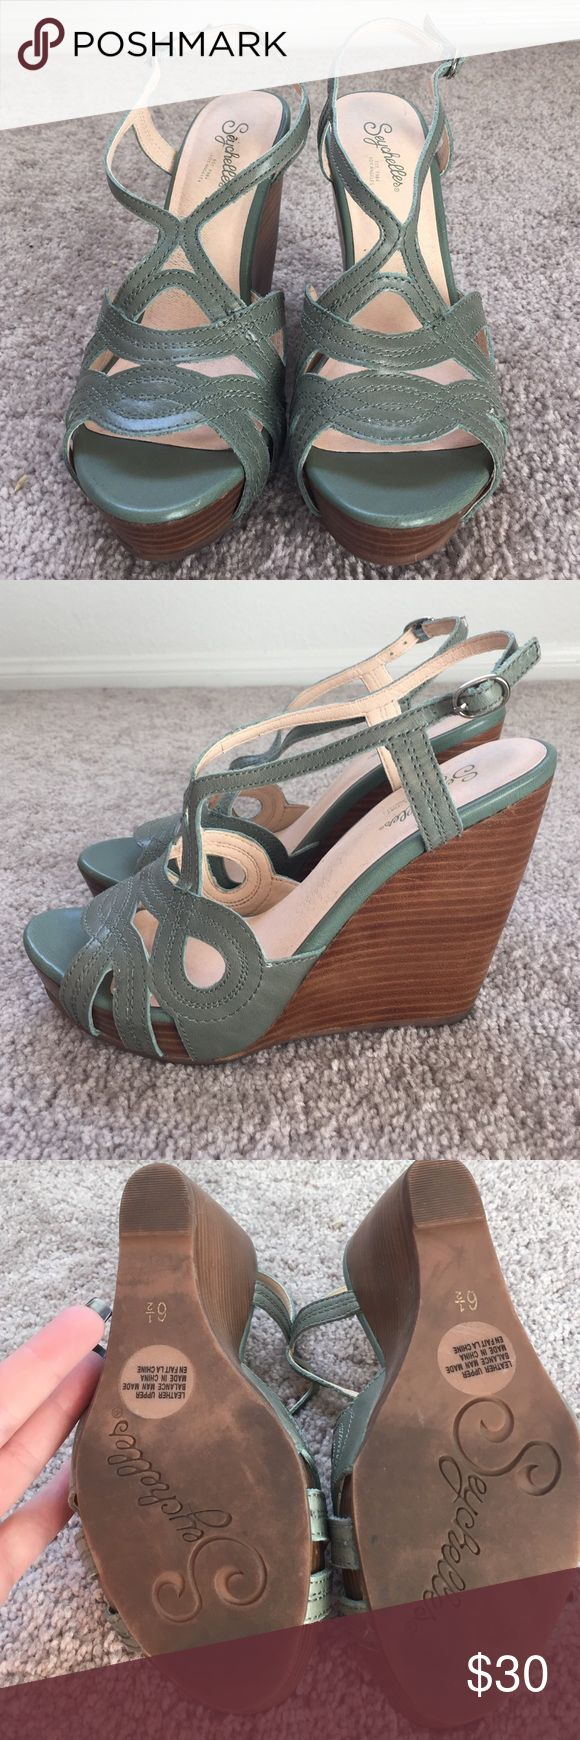 Women's Seychelles Green Leather Wedges size 6.5 Women's Seychelles Green Leather Wedges size 6.5 Seychelles Shoes Wedges